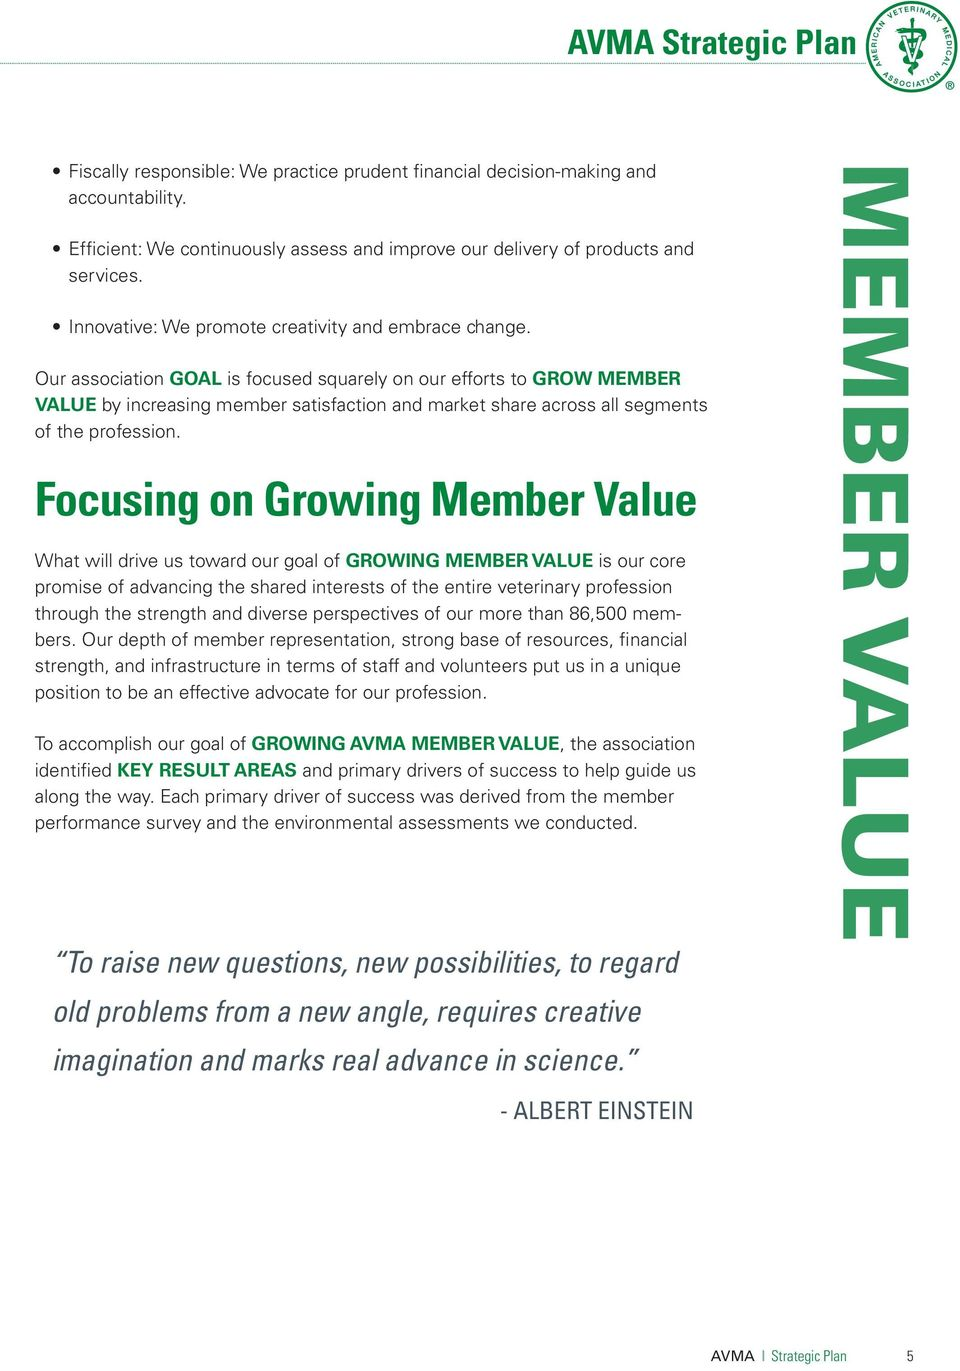 Our association GOAL is focused squarely on our efforts to GROW MEMBER VALUE by increasing member satisfaction and market share across all segments of the profession.